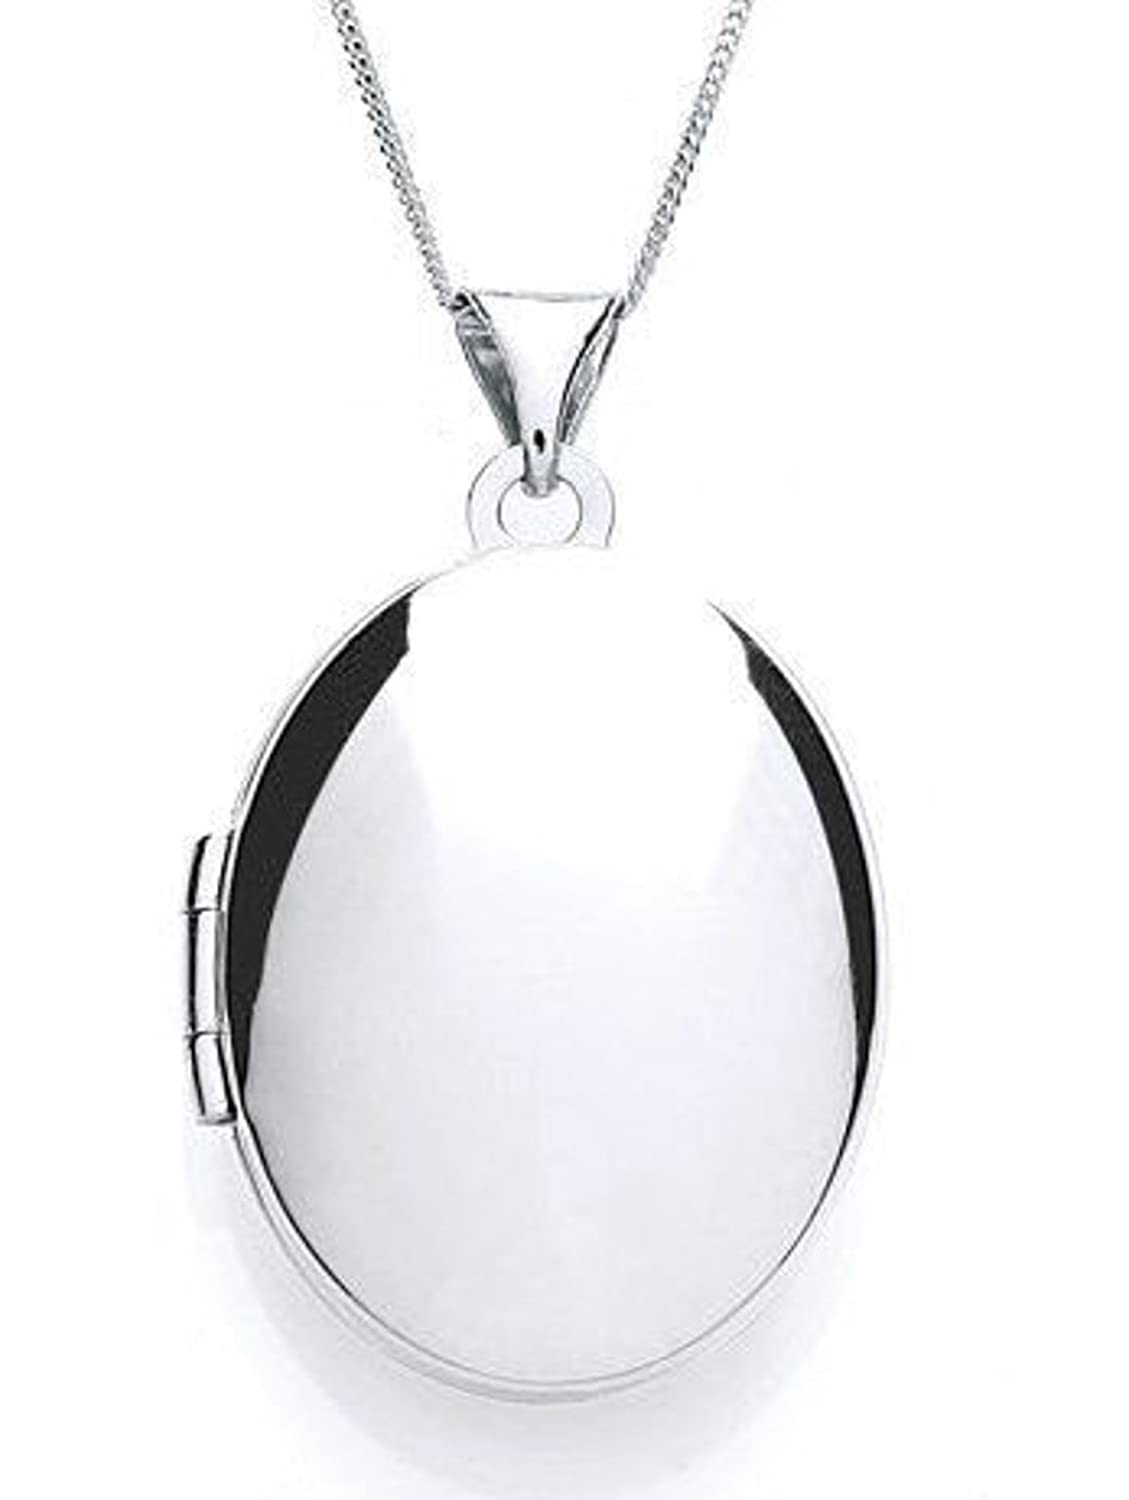 Plain sterling silver oval locket pendant with 18 chain plain sterling silver oval locket pendant with 18 chain jewellery gift box amazon jewellery aloadofball Images